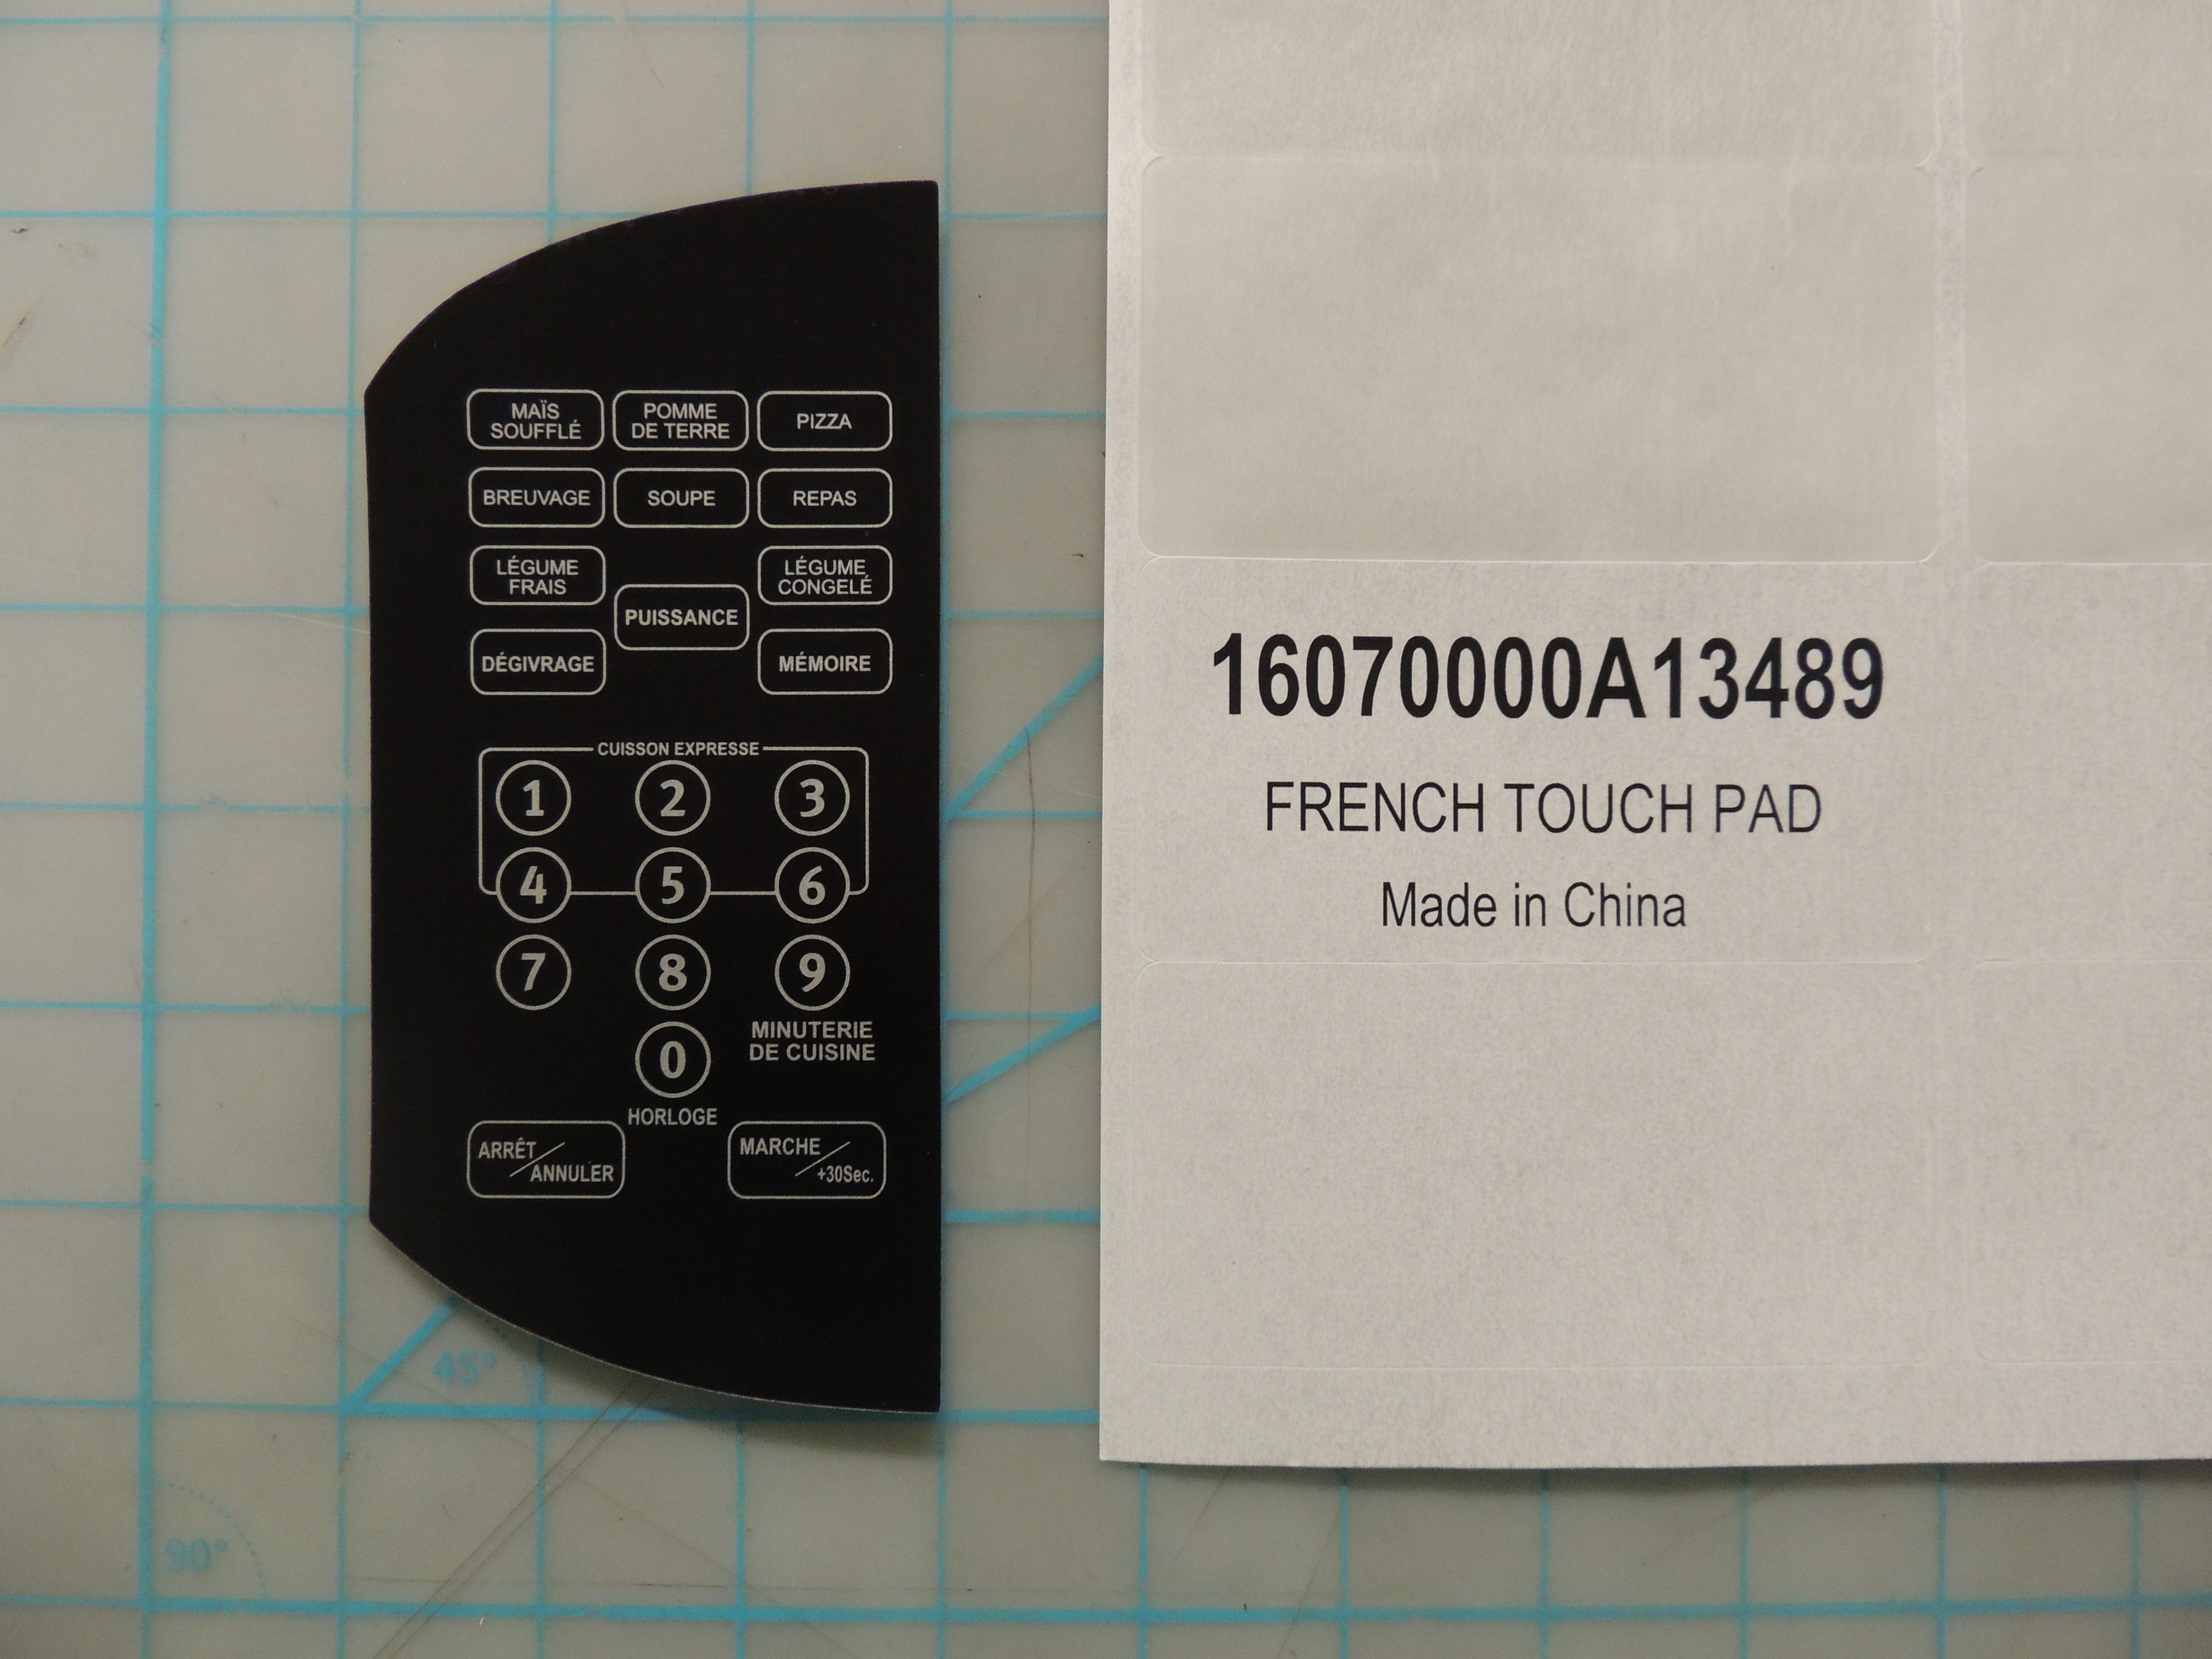 FRENCH TOUCH PAD